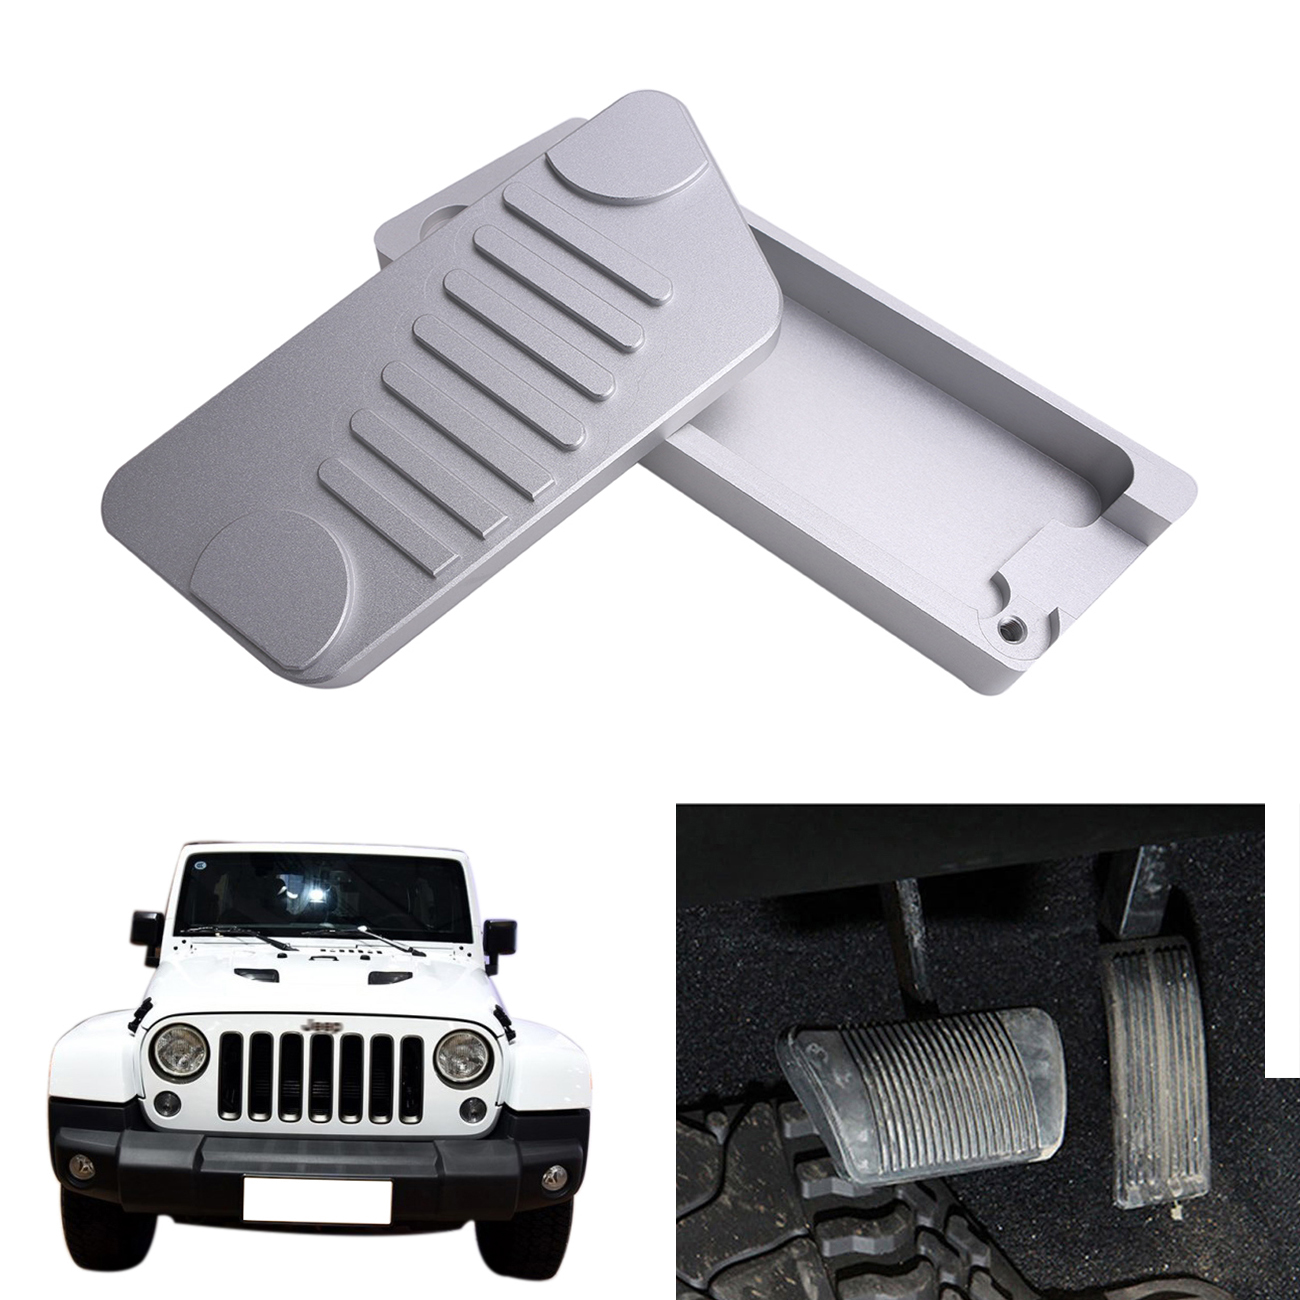 silver aluminum alloy accelerator gas brake pedal kit for jeep wrangler jk rubicon sahara sport 2009 2016 left hand drive ce039 in pedals from automobiles  [ 1300 x 1300 Pixel ]